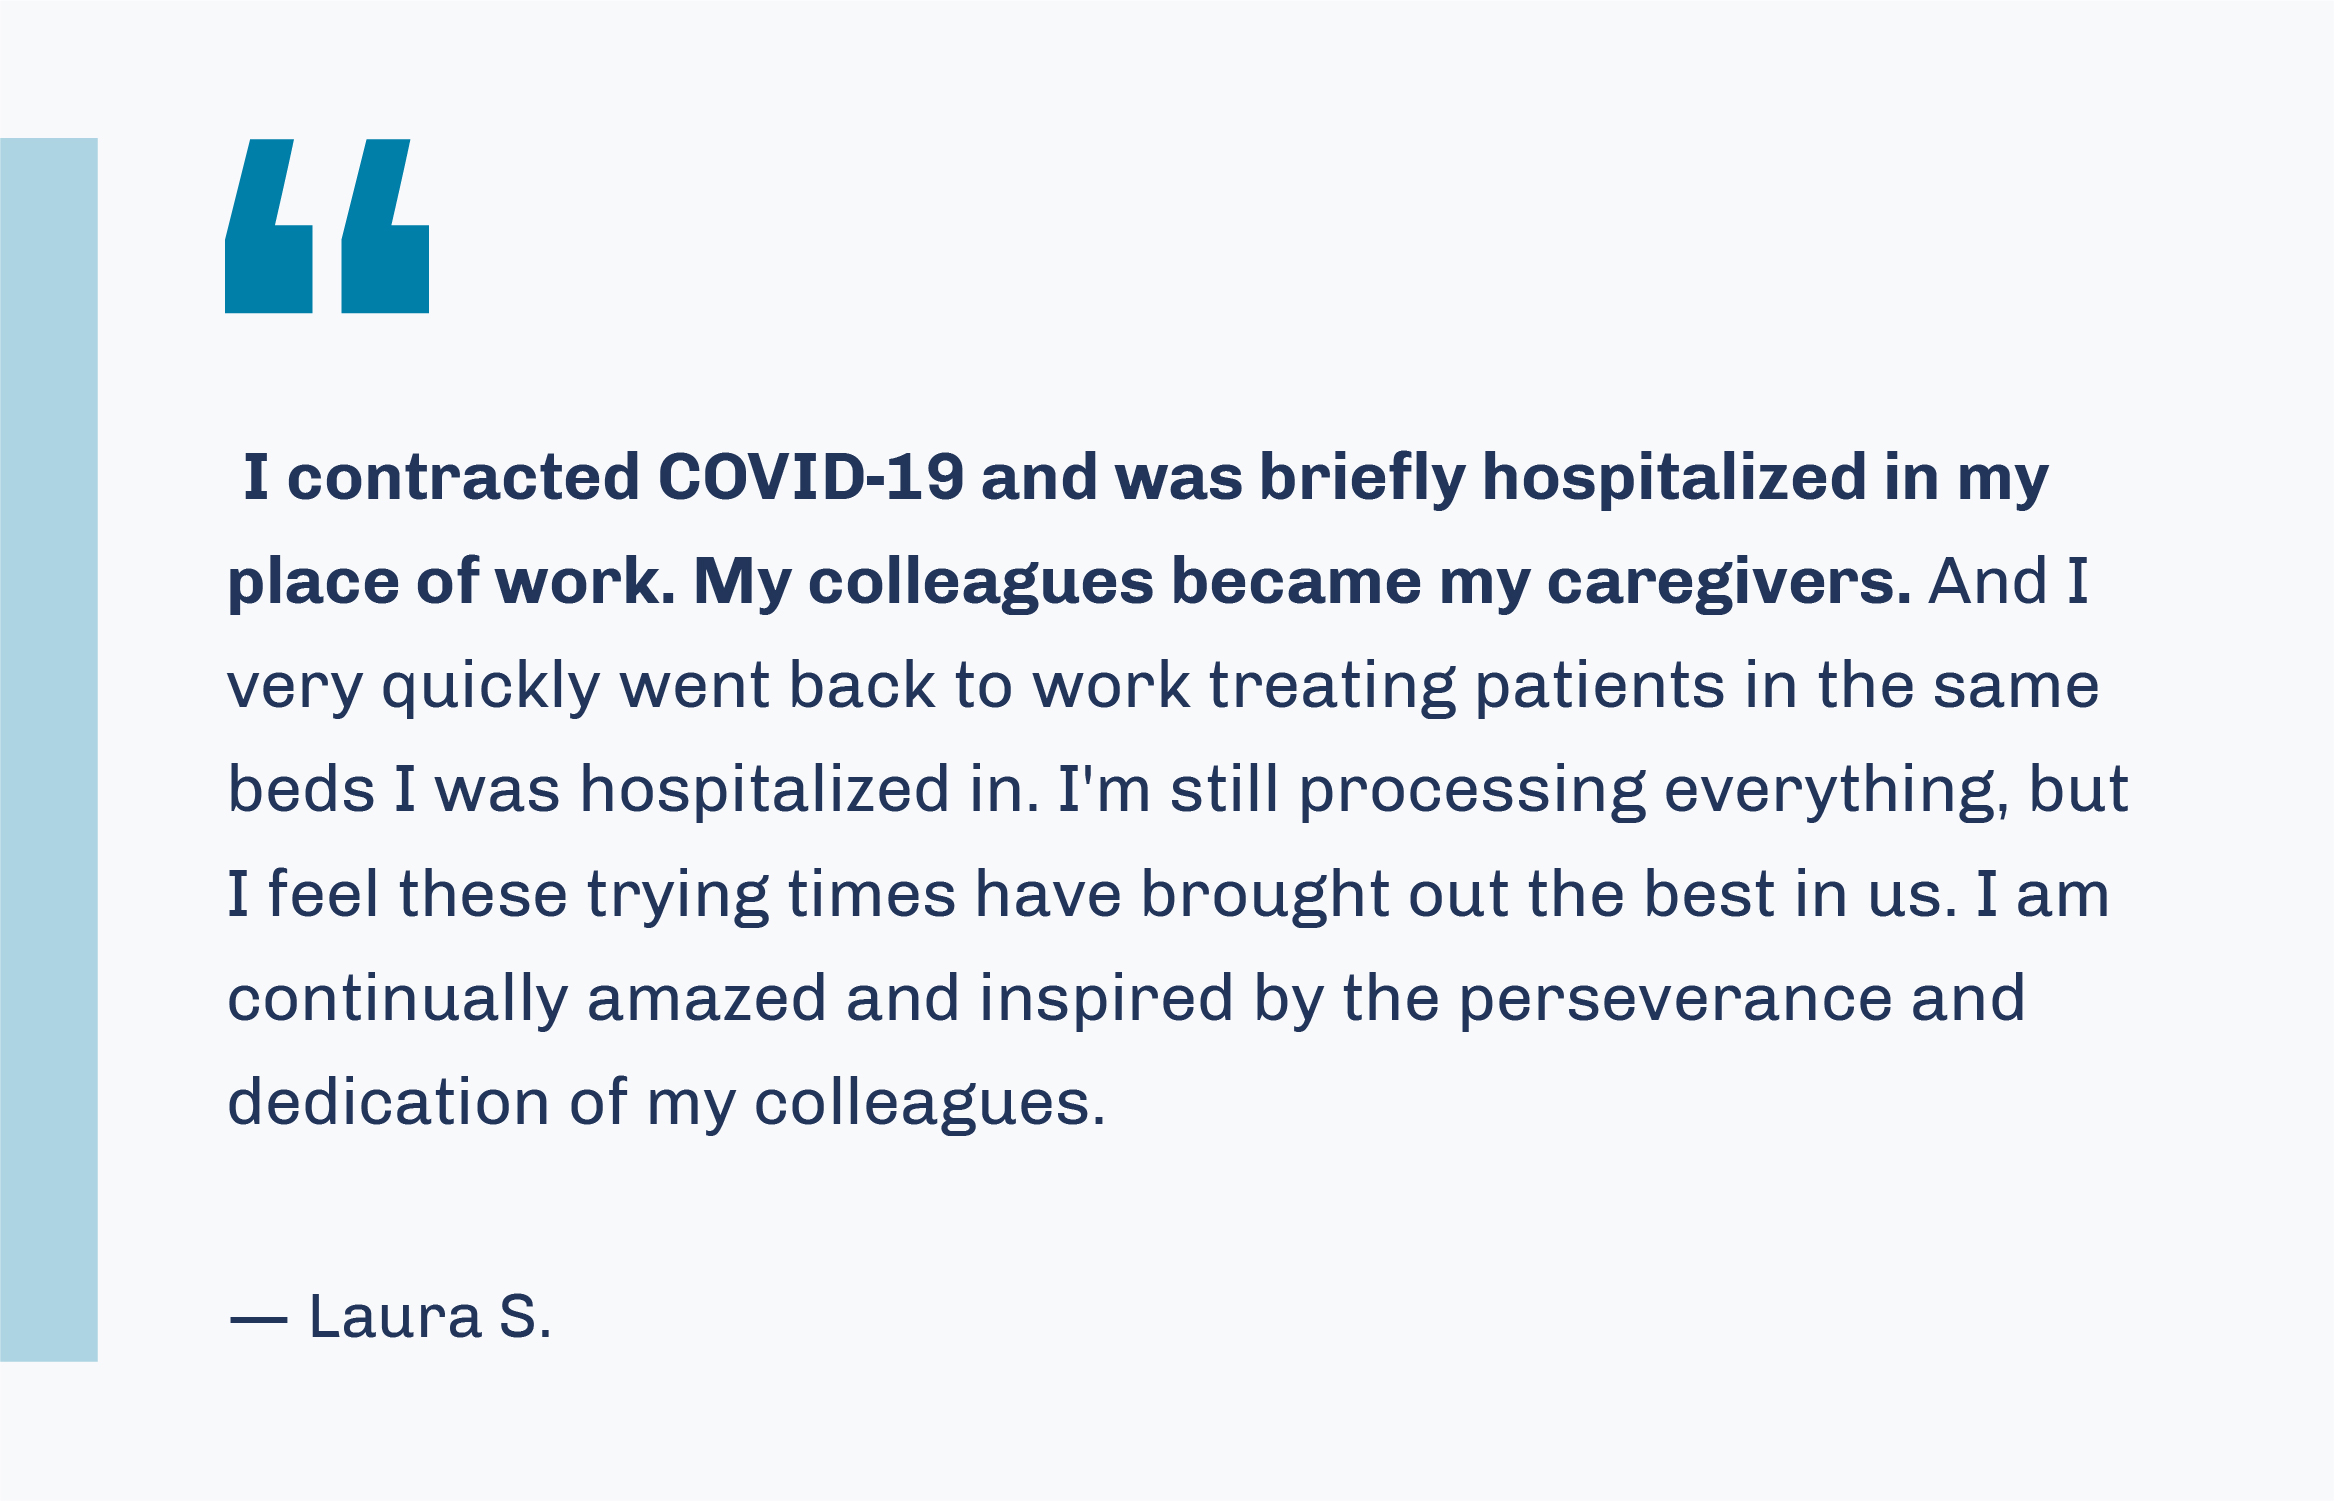 'I contracted COVID-19 and was briefly hospitalized in my place of work. My colleagues became my caregivers. And I very quickly went back to work treating patients in the same beds I was hospitalized in. I'm still processing everything, but I feel these trying times have brought out the best in us. I am continually amazed and inspired by the perseverance and dedication of my colleagues.' -- Laura S.